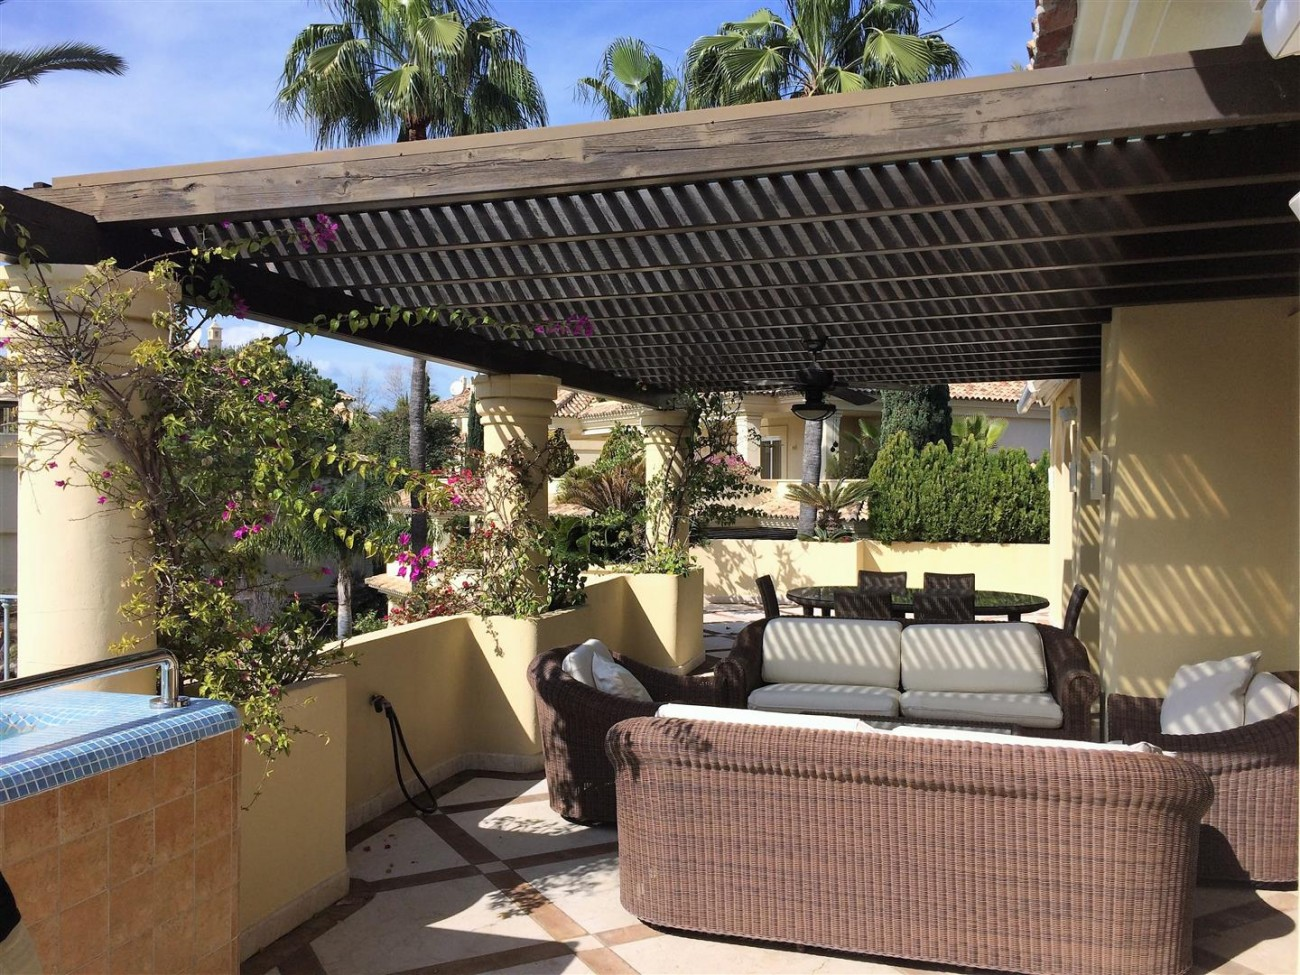 Penthouse for sale Las Alamandas Nueva Andalucia Marbella Spain (36) (Large)